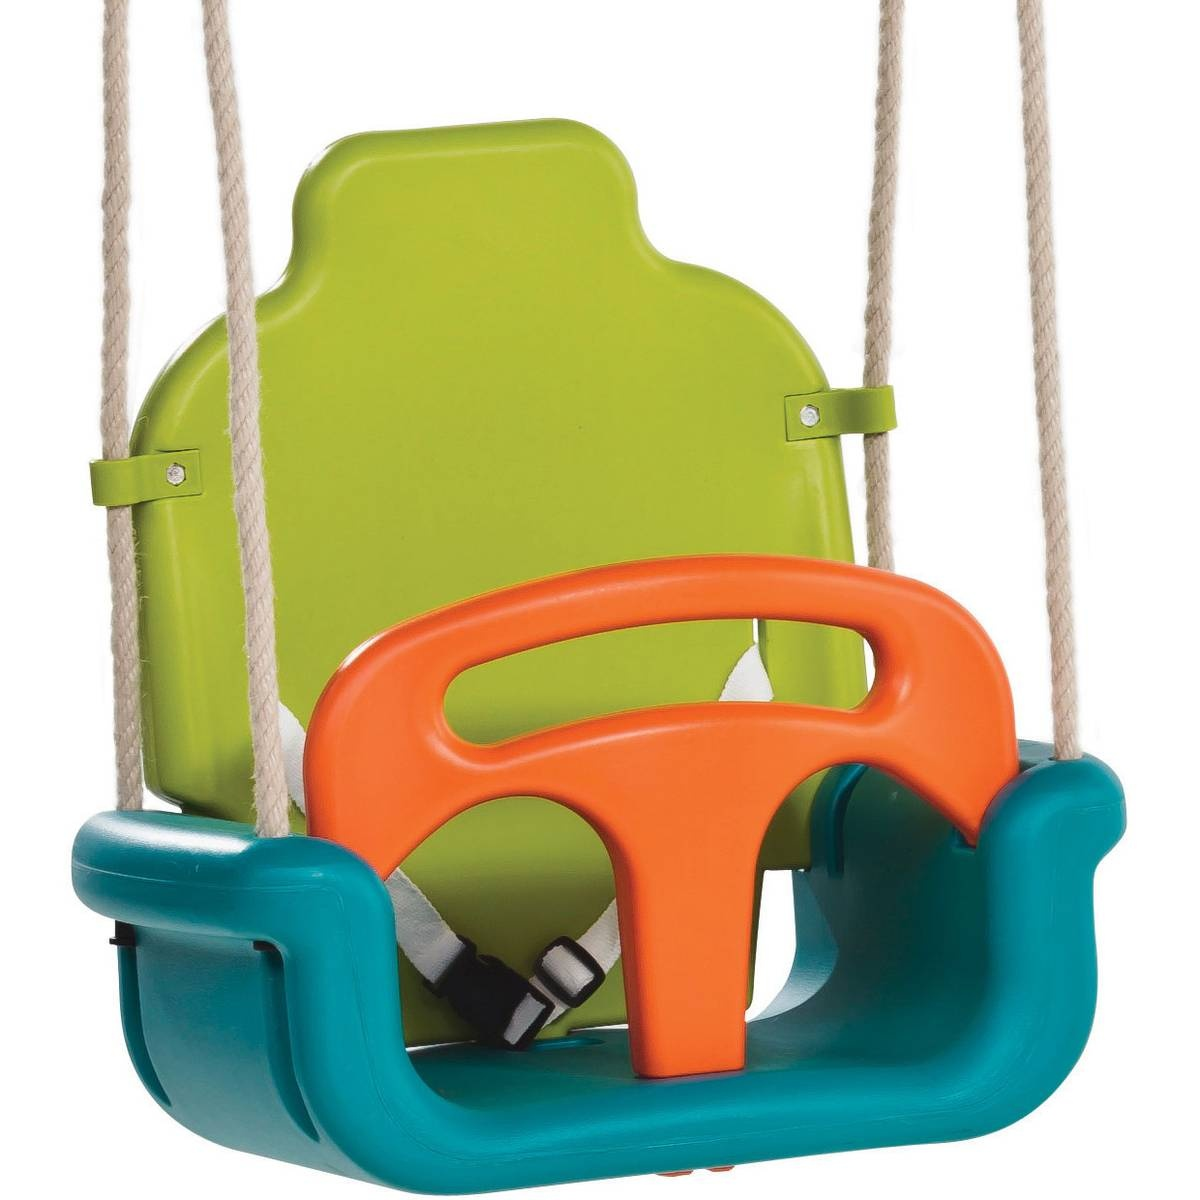 Swing Schommel Baby.Axi Baby Swing Seat Growth Model Twm Tom Wholesale Management